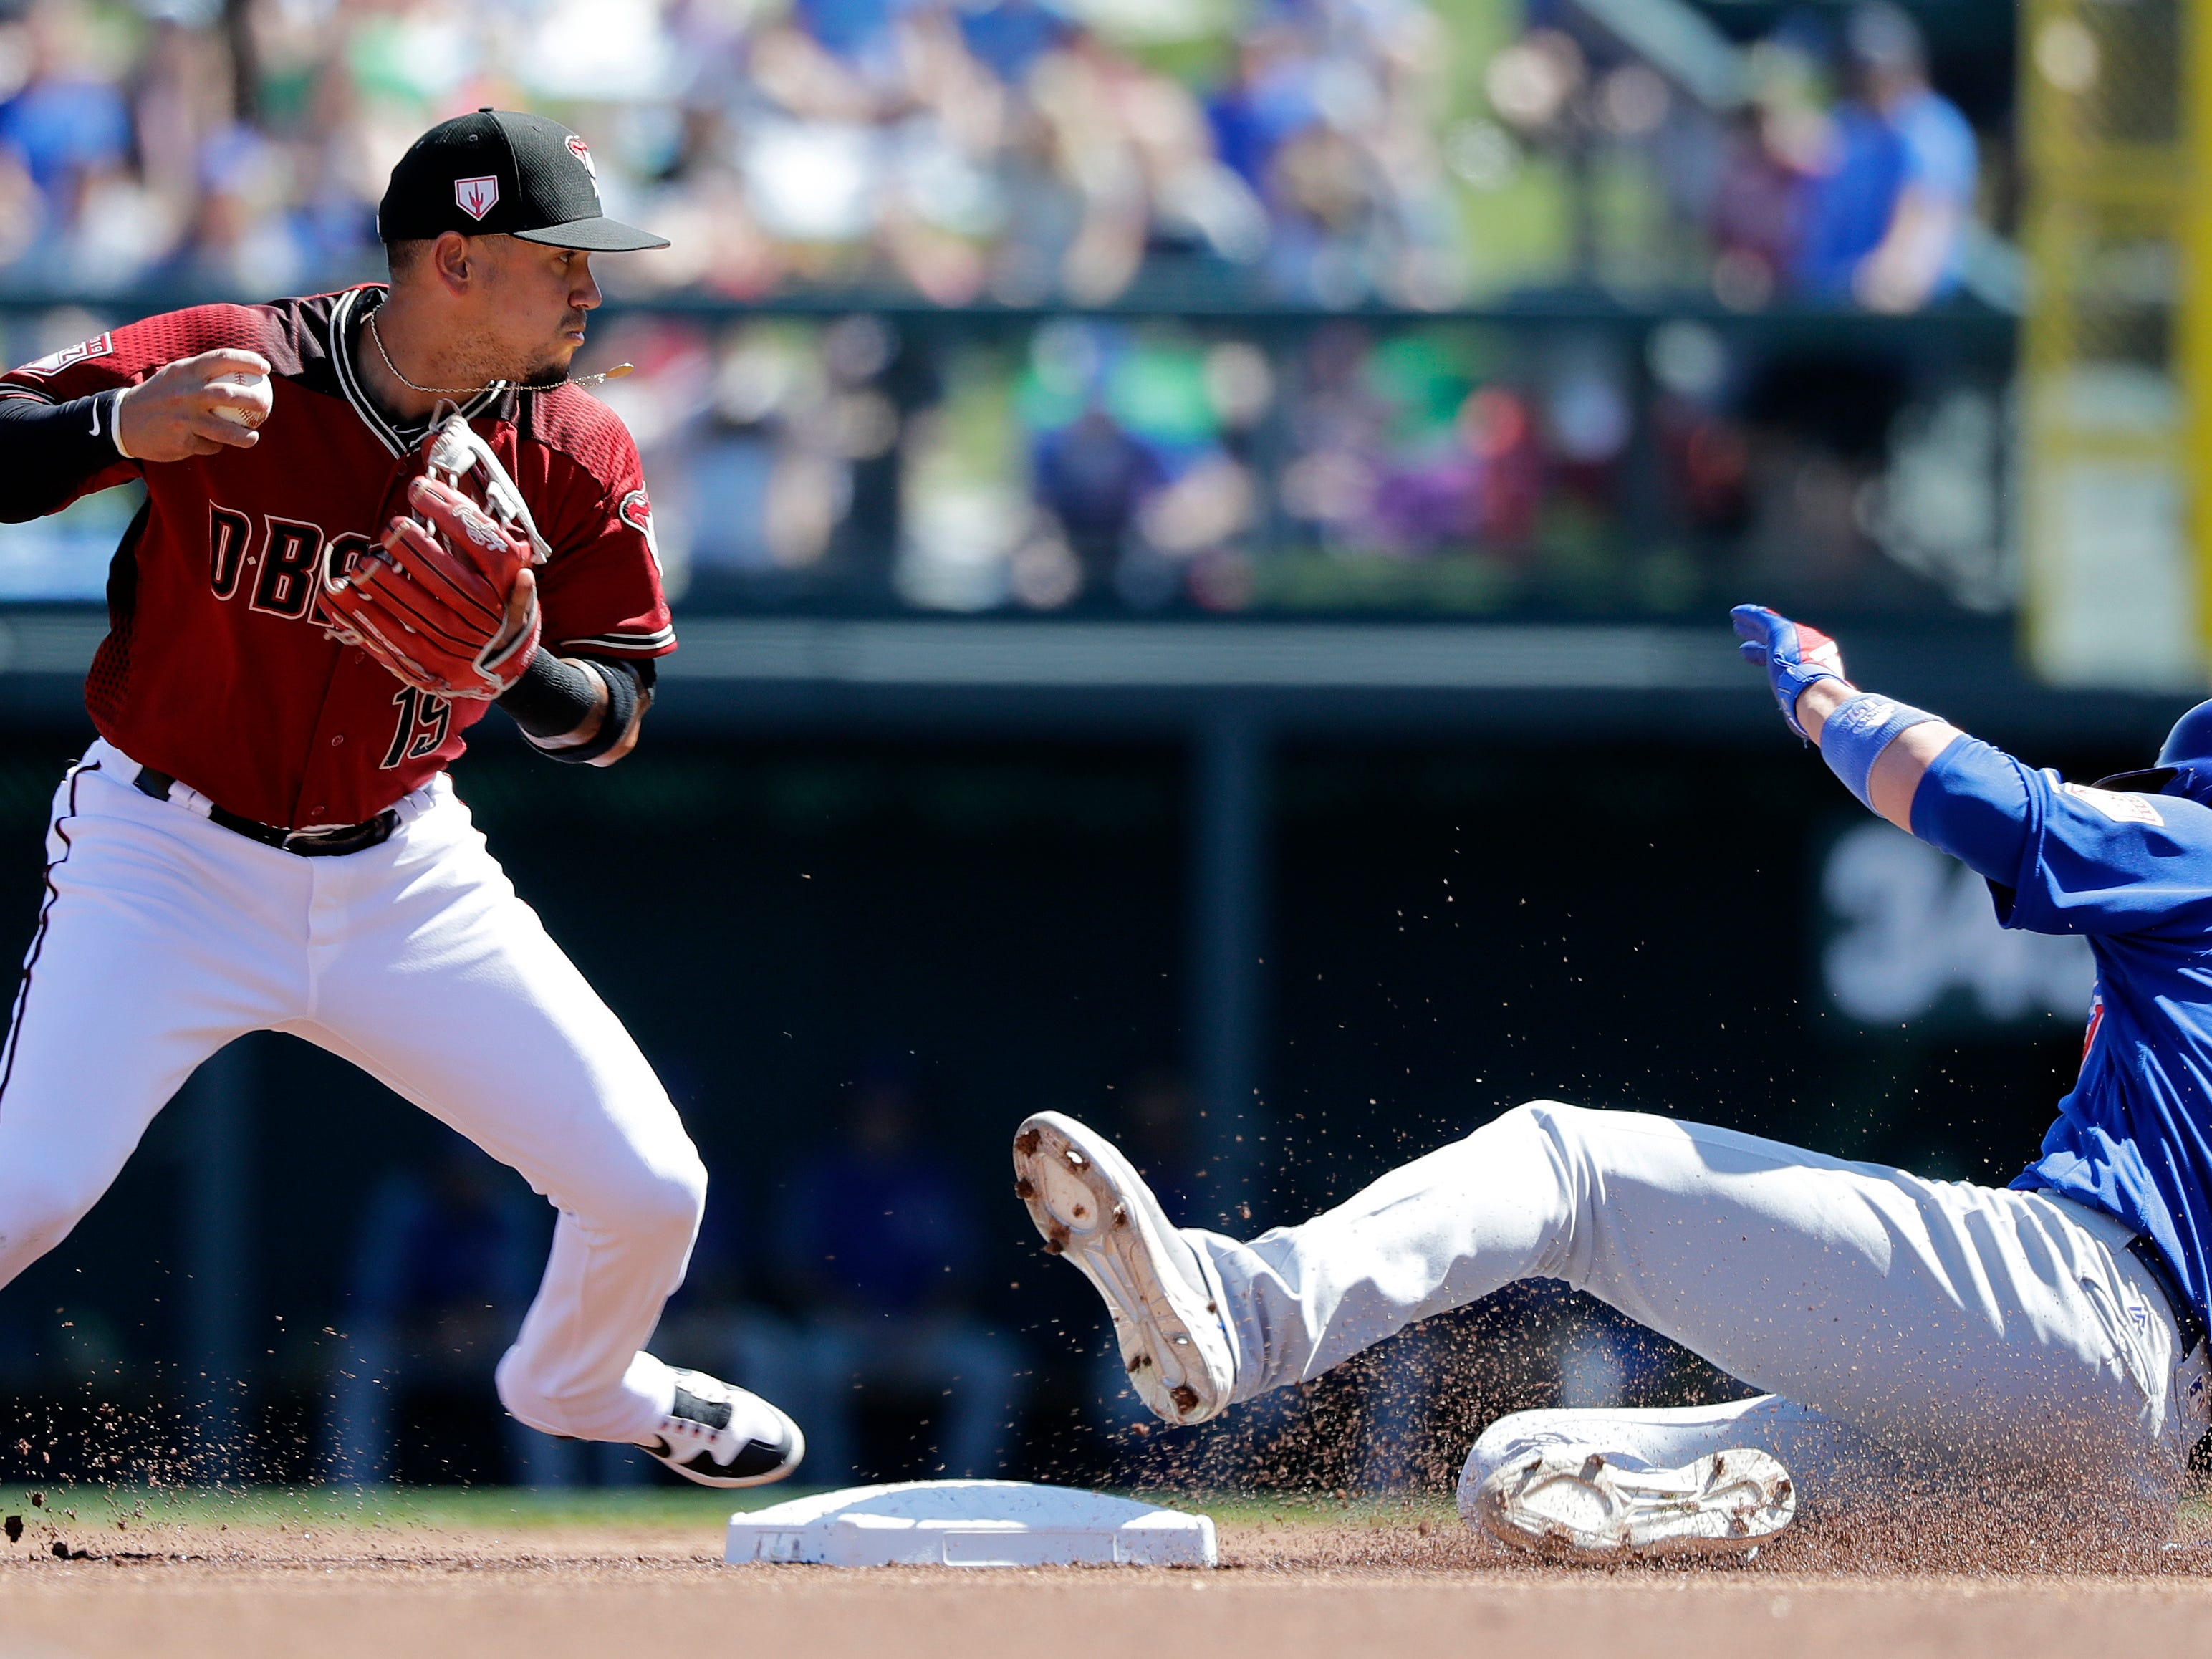 Arizona Diamondbacks third baseman Ildemaro Vargas, left, moves toward second base to tag it and force out Chicago Cubs' Kris Bryant (17) before throwing to first base in the first inning of a spring training baseball game Saturday, March 16, 2019, in Scottsdale, Ariz. Cubs' Anthony Rizzo was tagged out on a rundown between first and second base on the play.